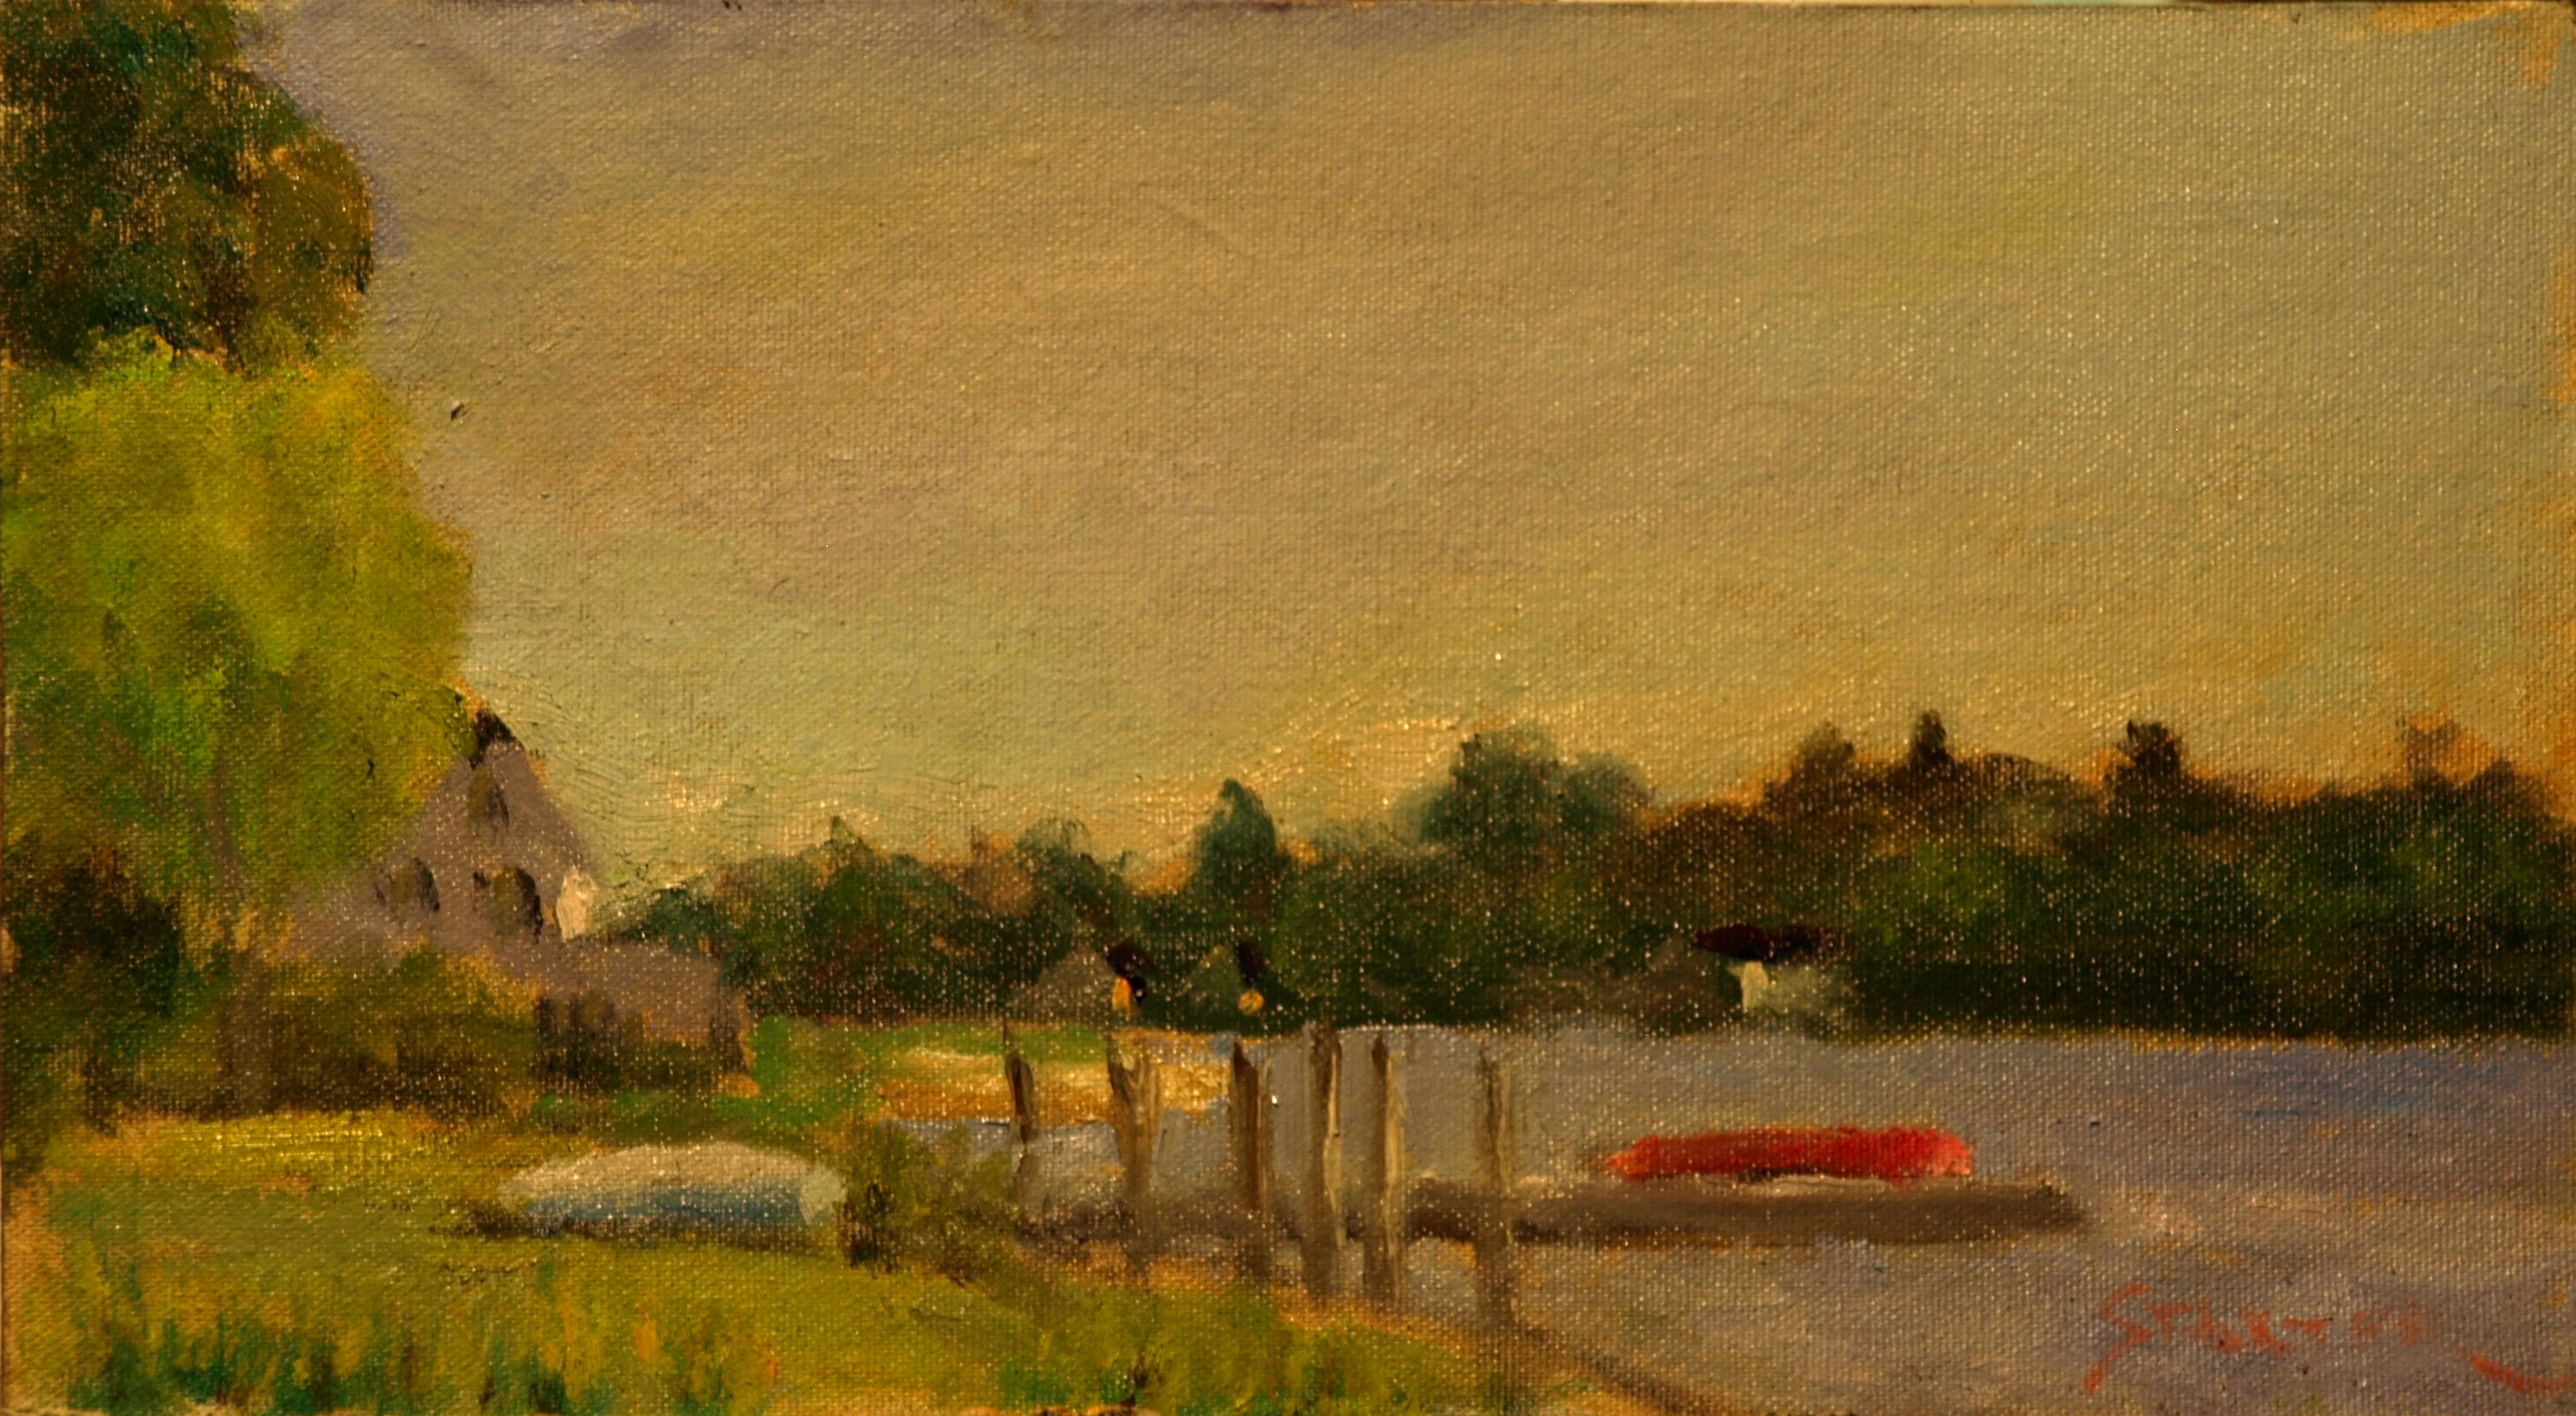 Mystic River Shore, Oil on Canvas on Panel, 8 x 14 Inches, by Richard Stalter, $225